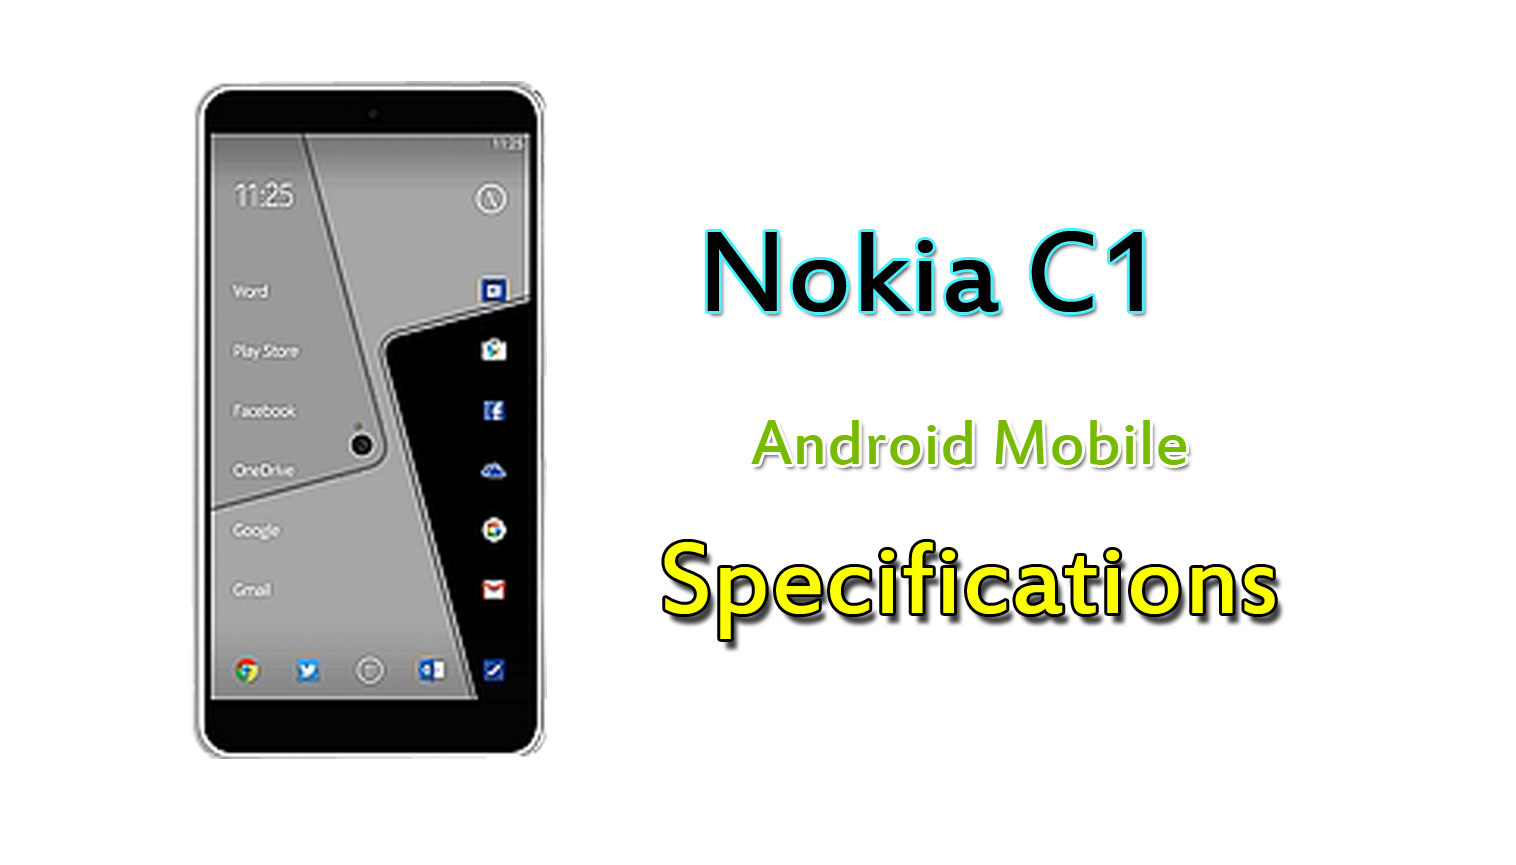 nokia c1 android. nokia c1 full mobile specifications android mobiles